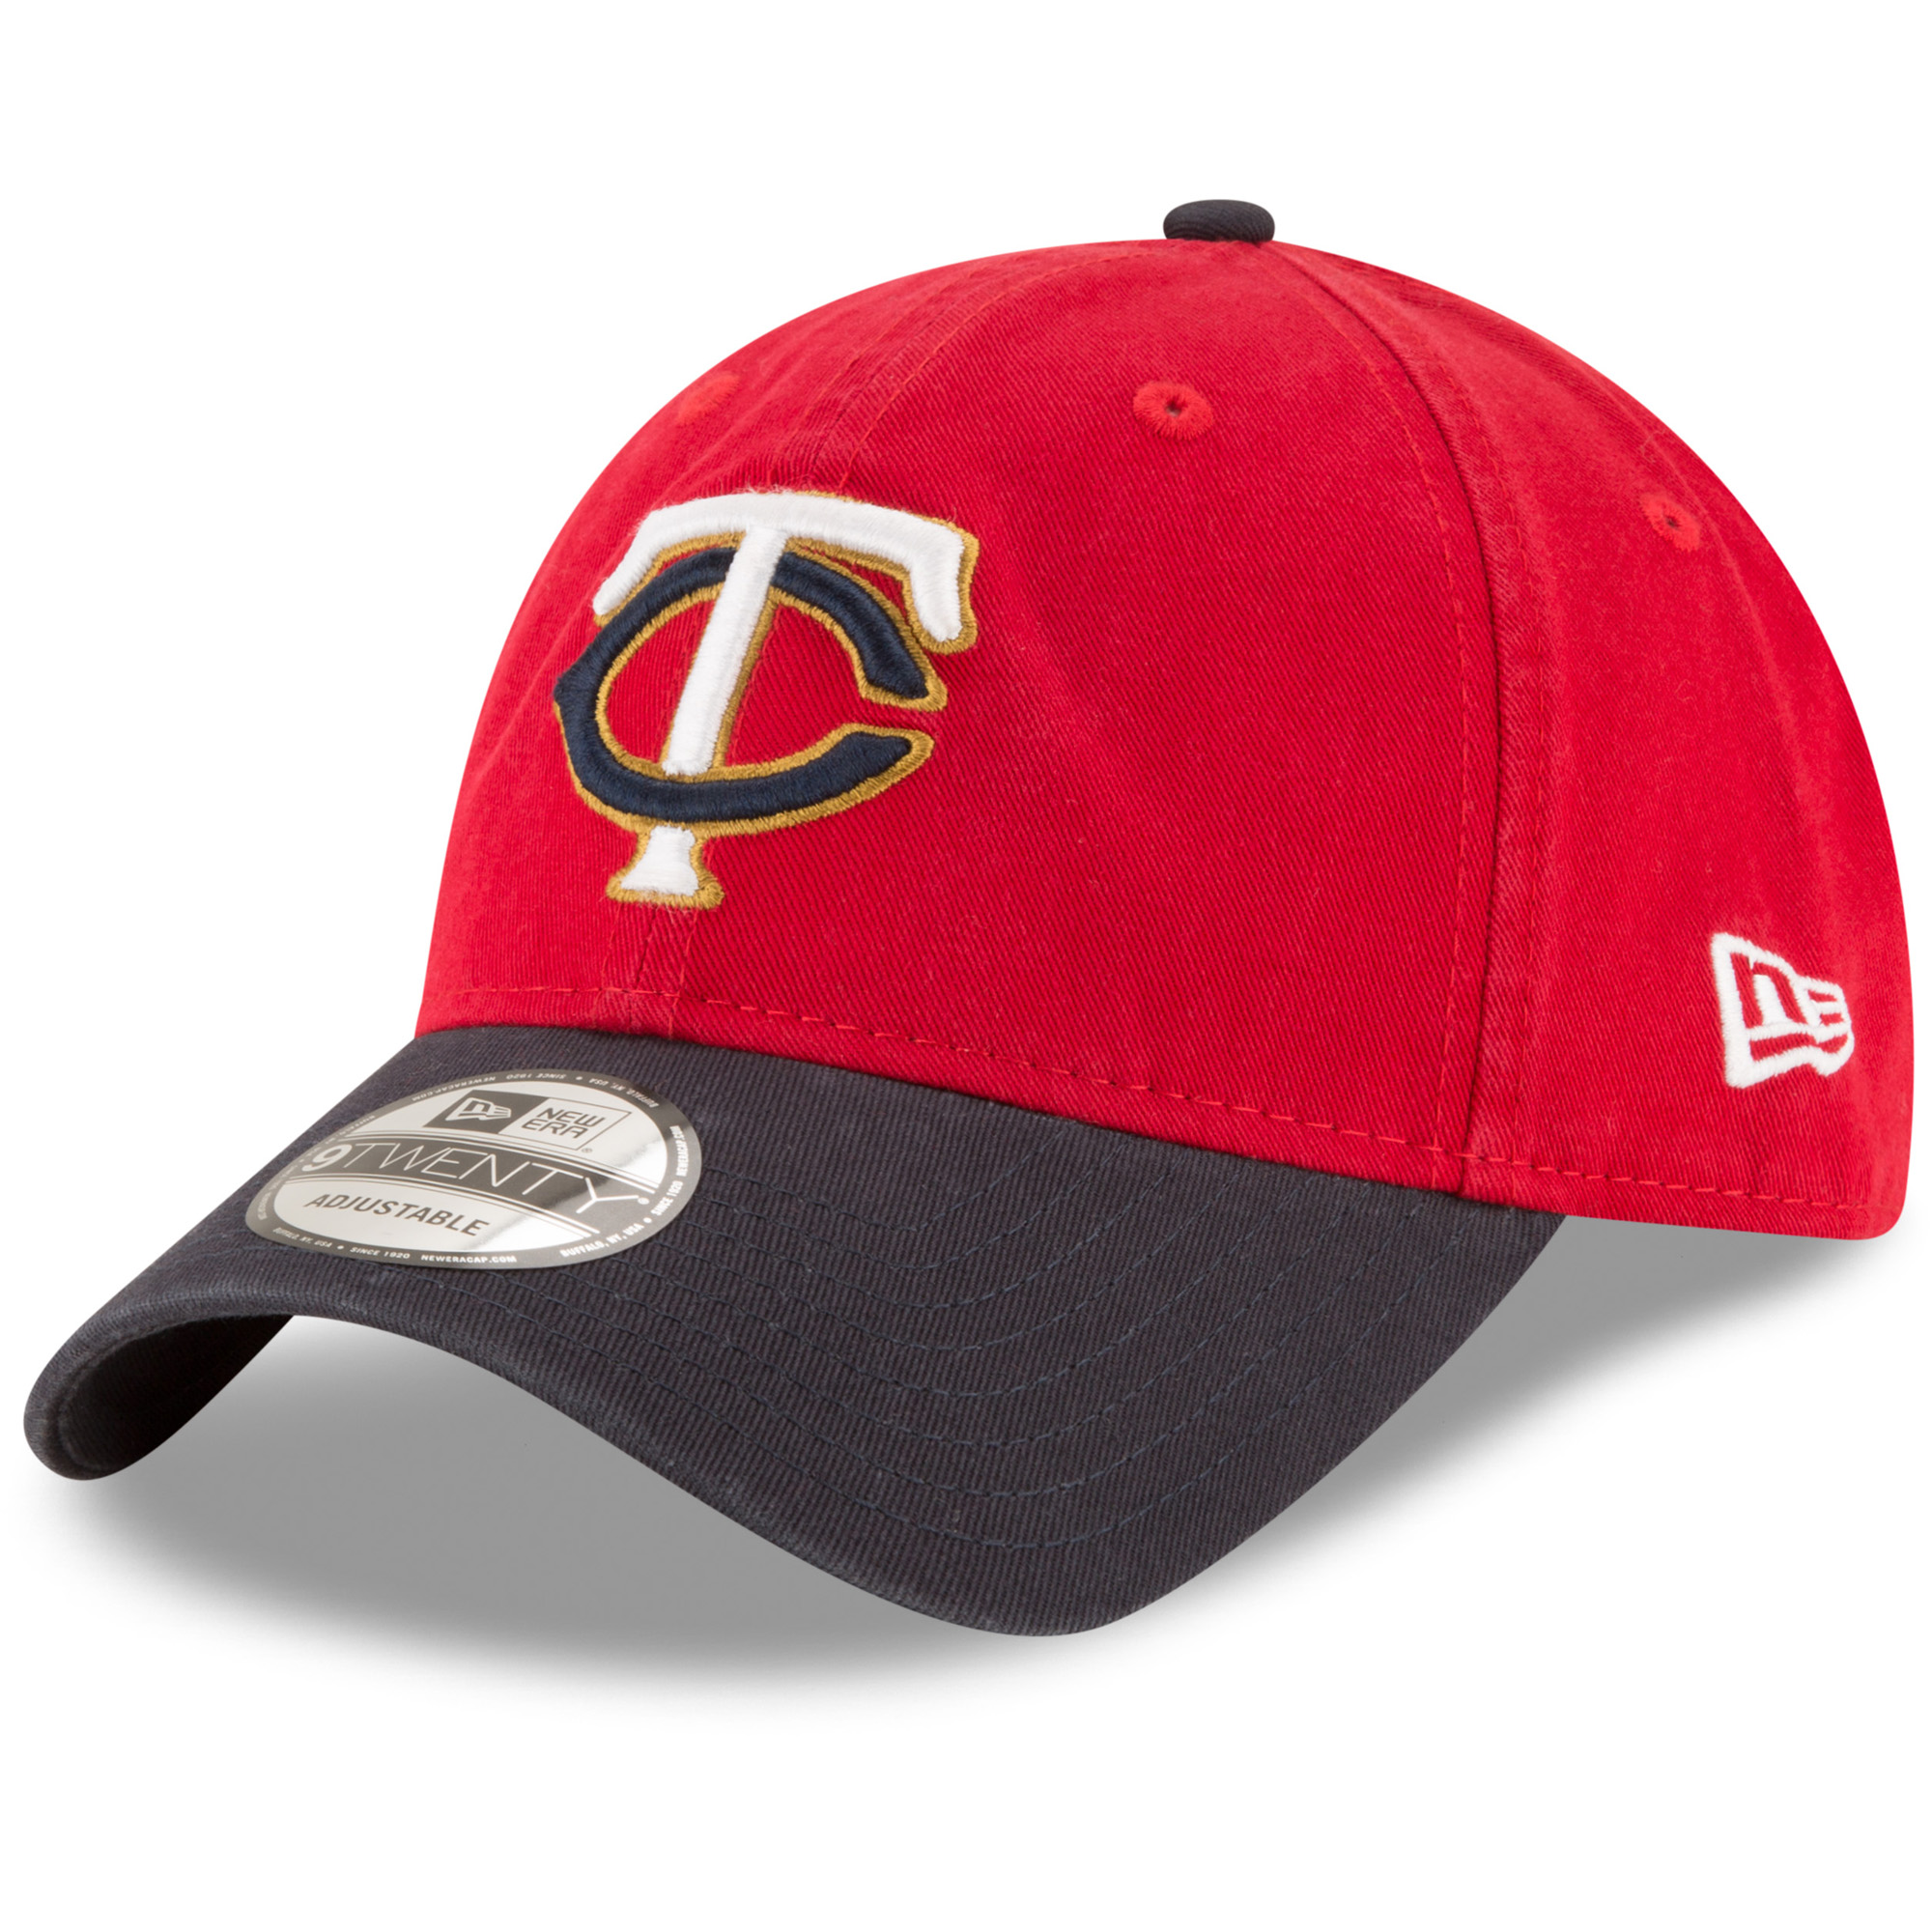 official photos 5a8d7 331dd ... ebay product image minnesota twins new era alternate 2 replica core  classic 9twenty adjustable hat red